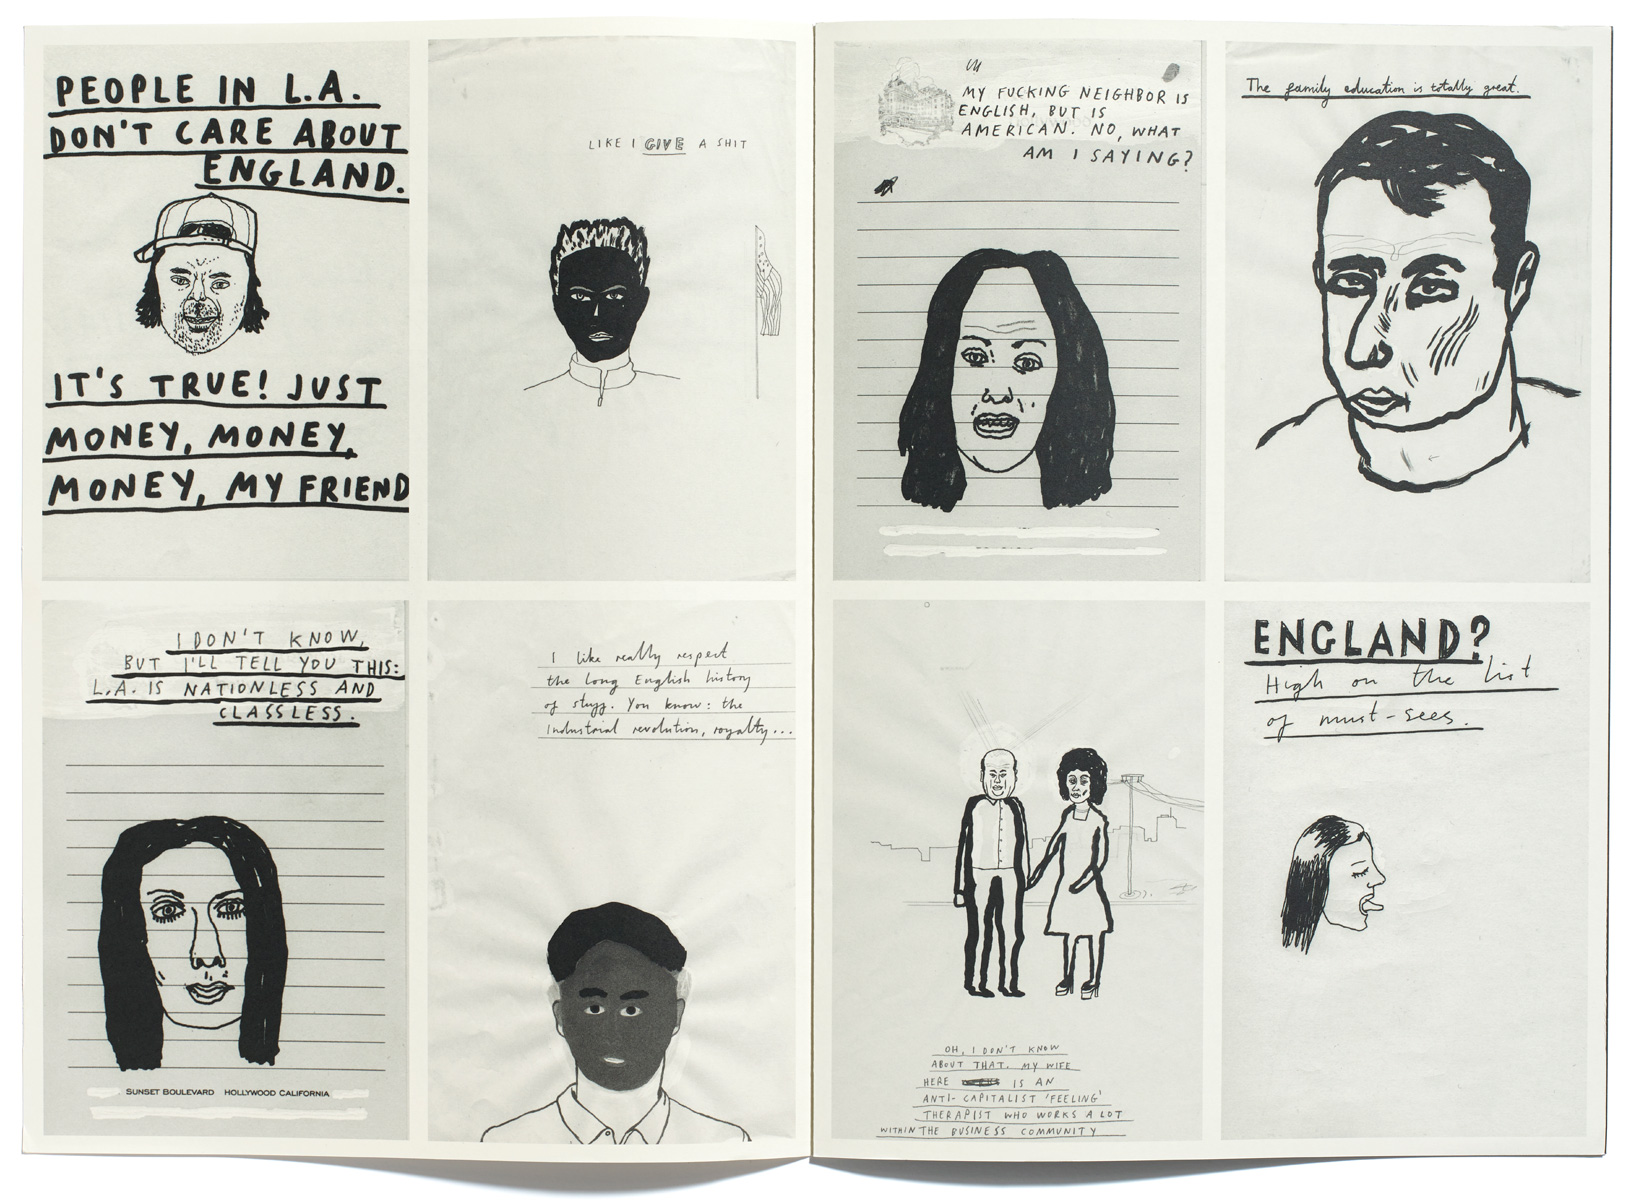 Browns Editions, What Do Californians Think of The English? Publication for Paul Davis